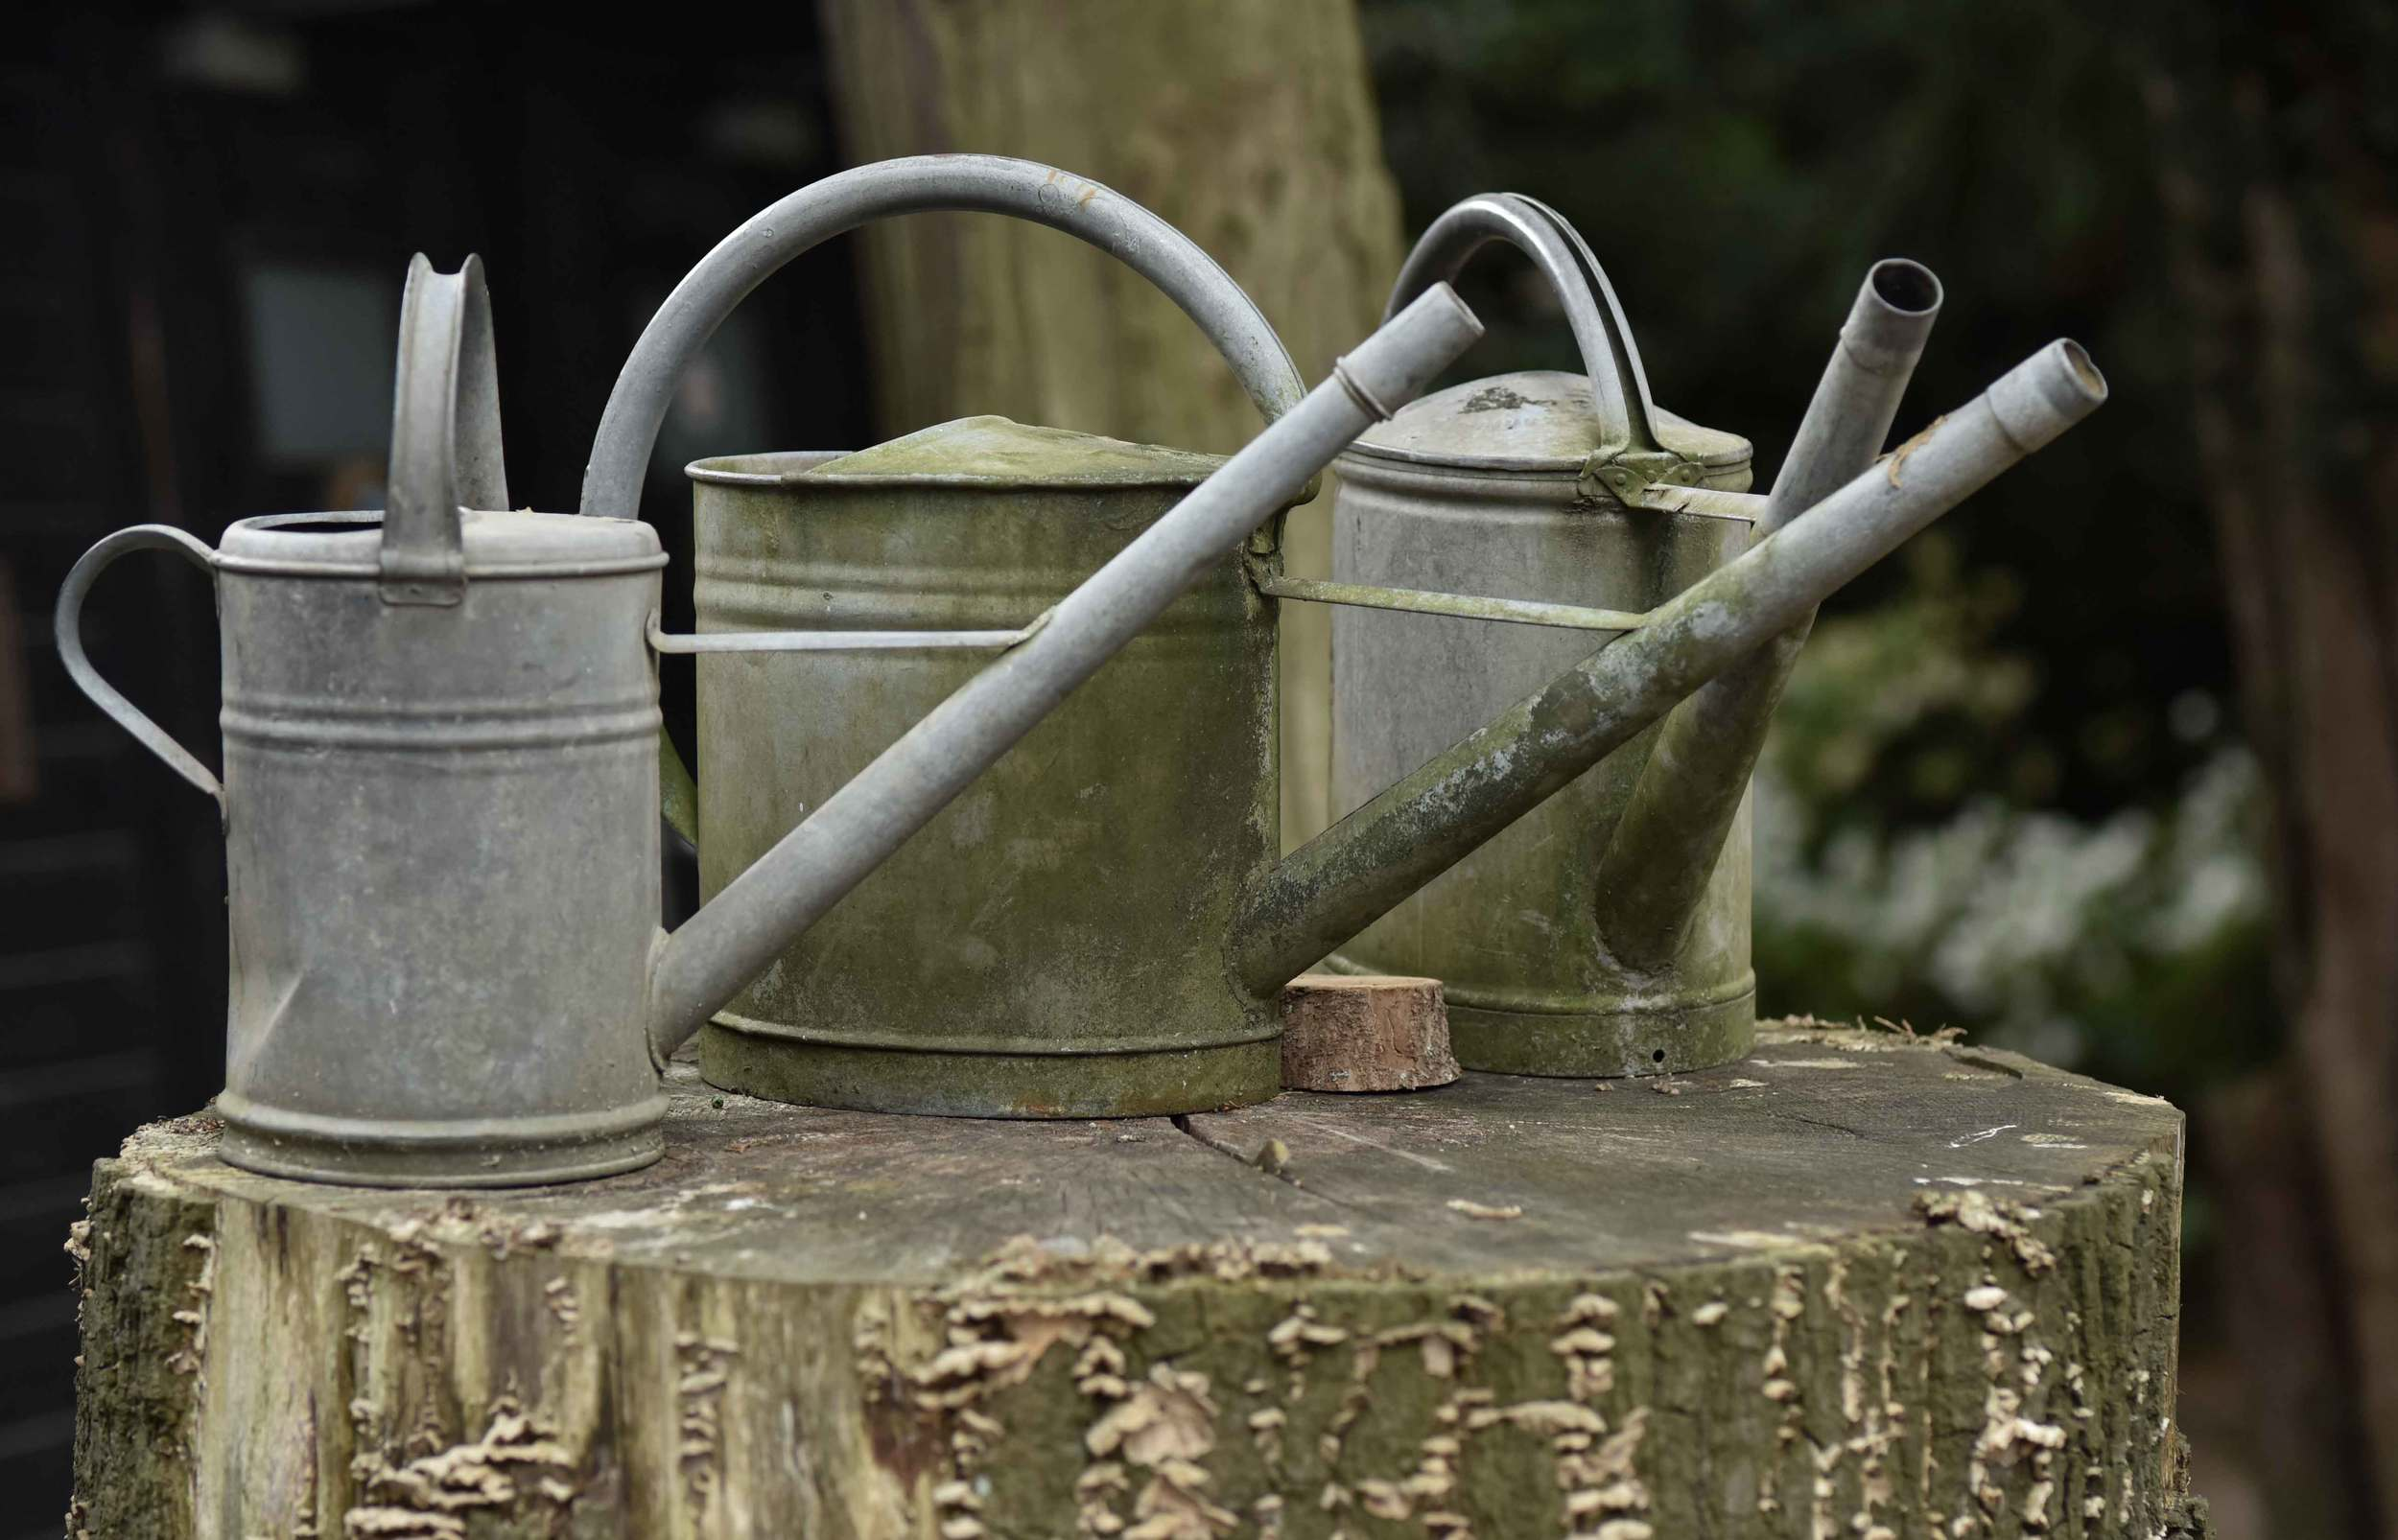 Water cans in a park, Ratingen, Germany. Image©sourcingstyle.com, Photo: Nicola Nolting